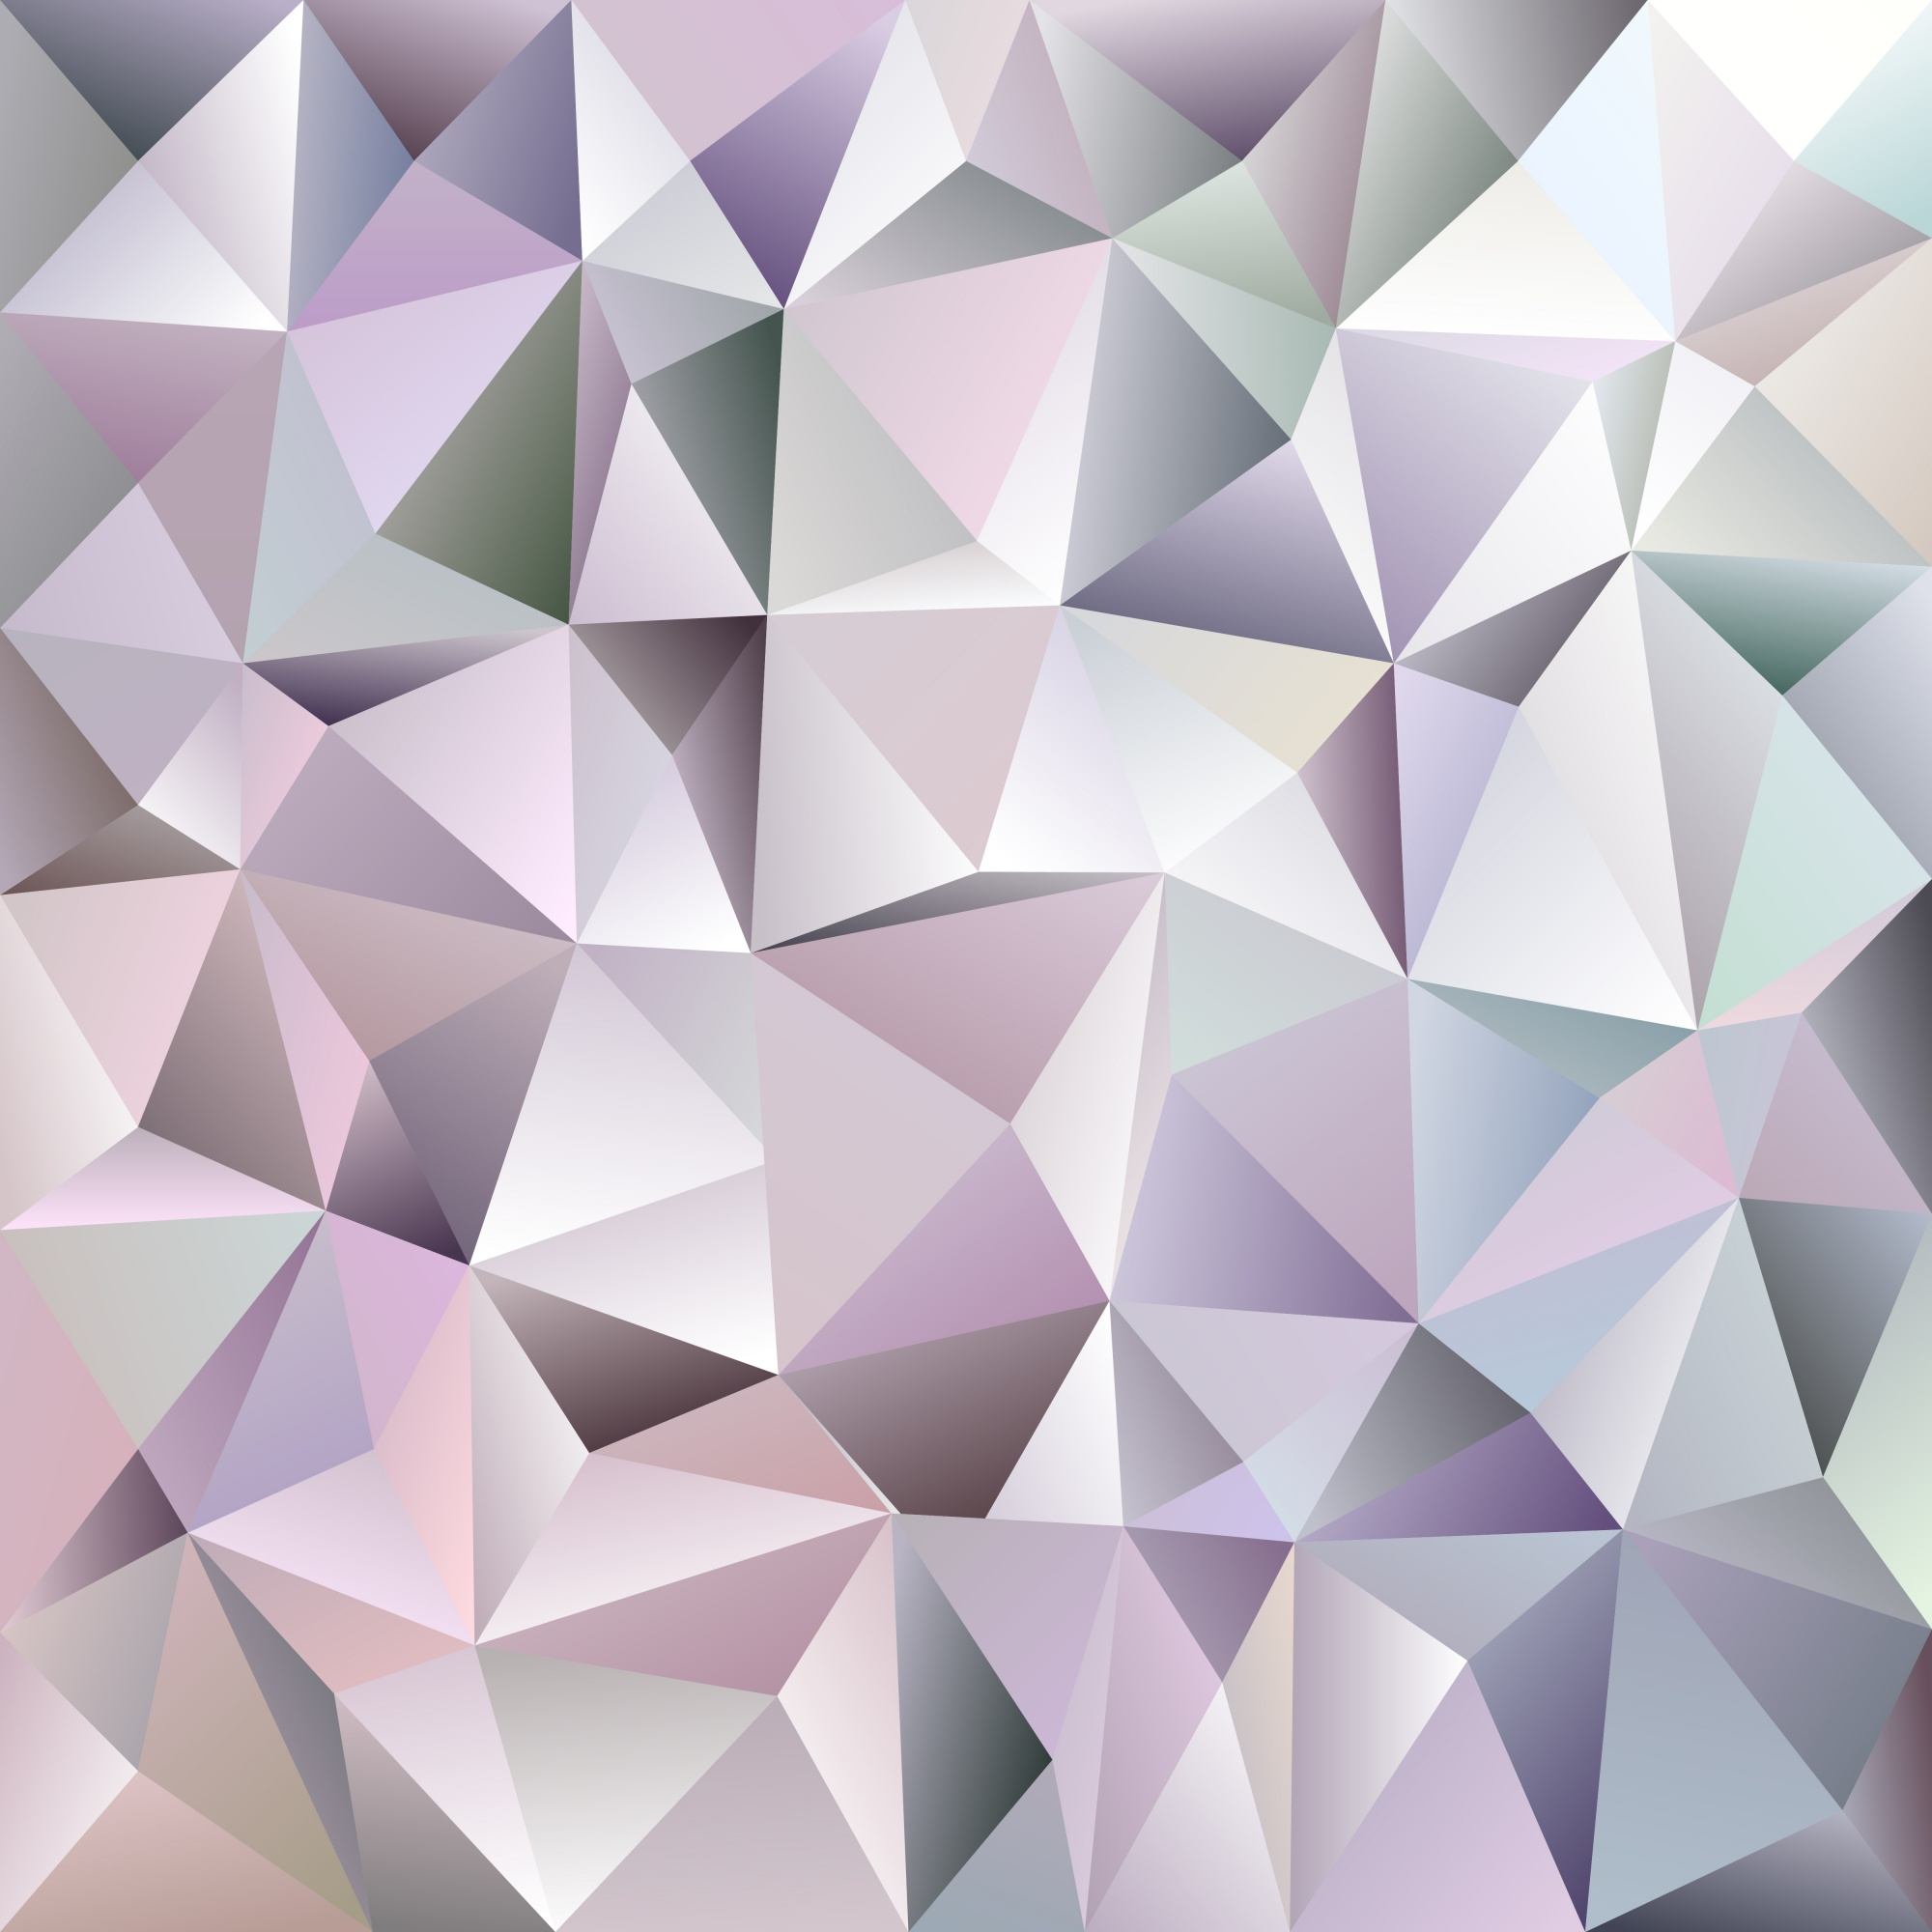 Geometric abstract chaotic triangle pattern background - mosaic vector graphic design